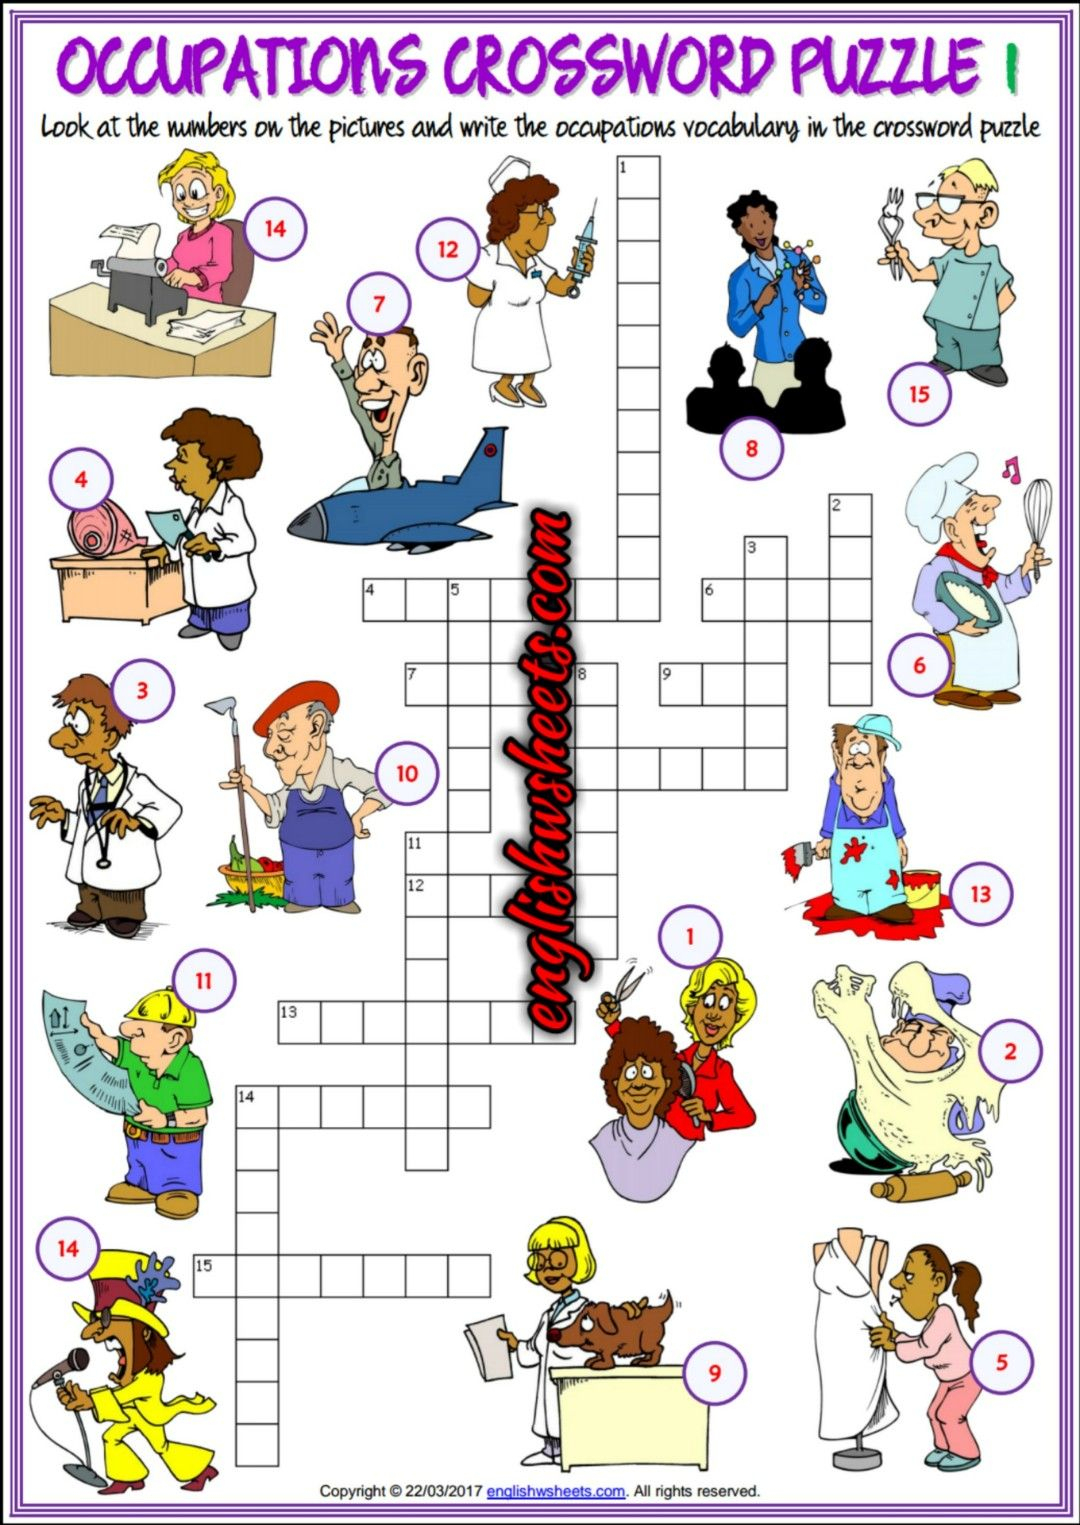 Jobs Occupations Professions Esl Printable Crossword Puzzle - Printable Crossword Puzzles Job